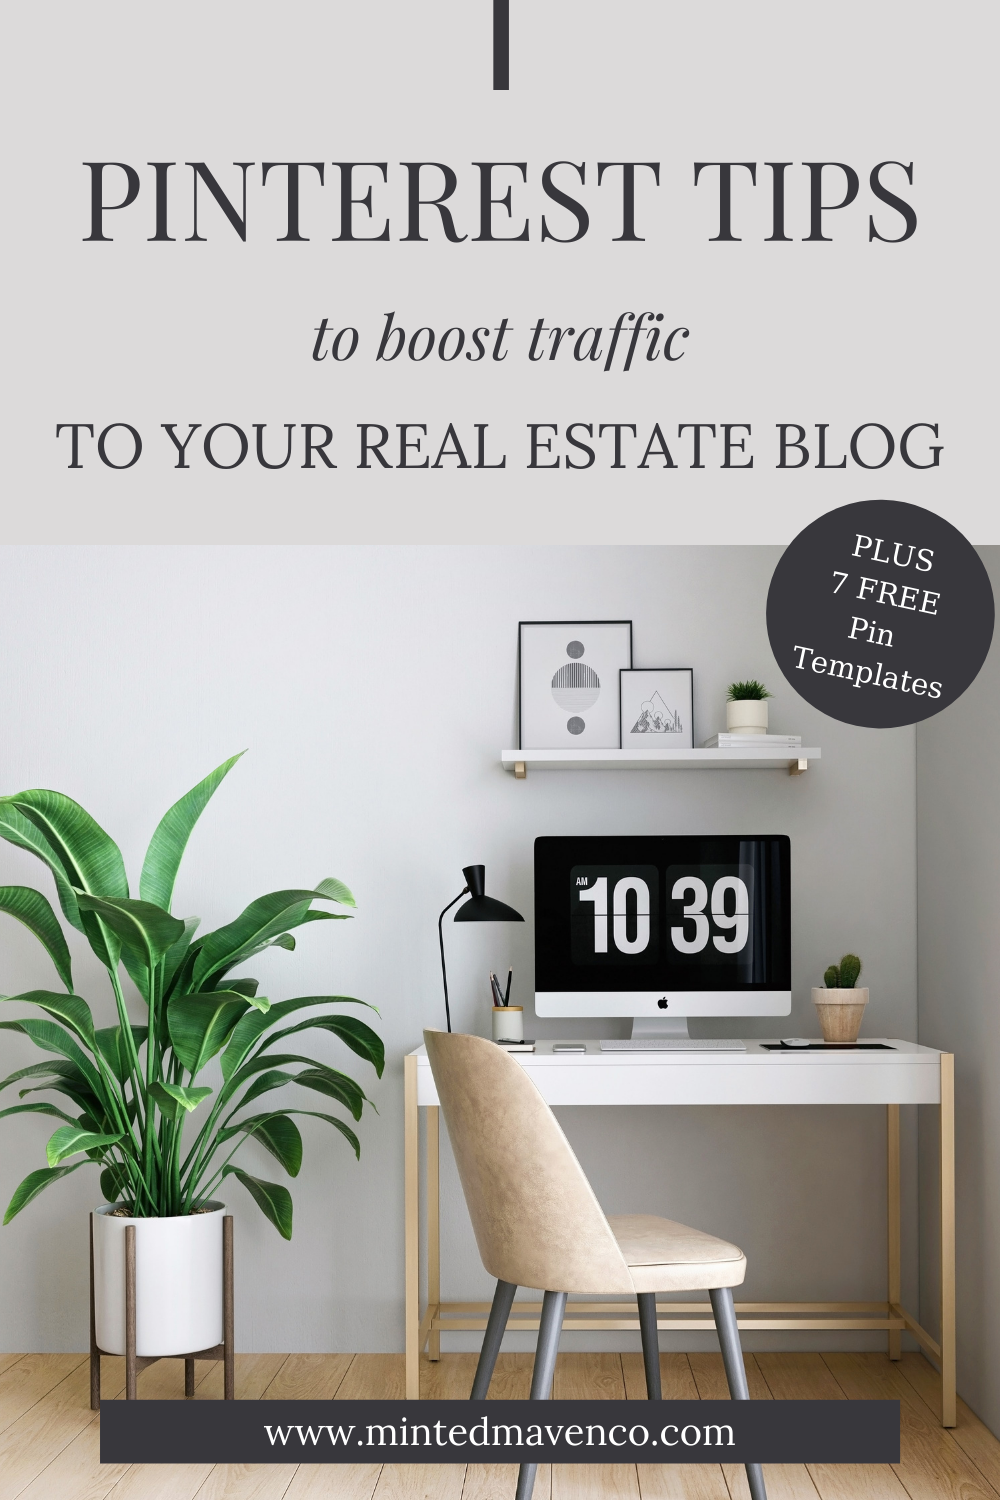 Pinterest tips to boost traffic to your real estate blog